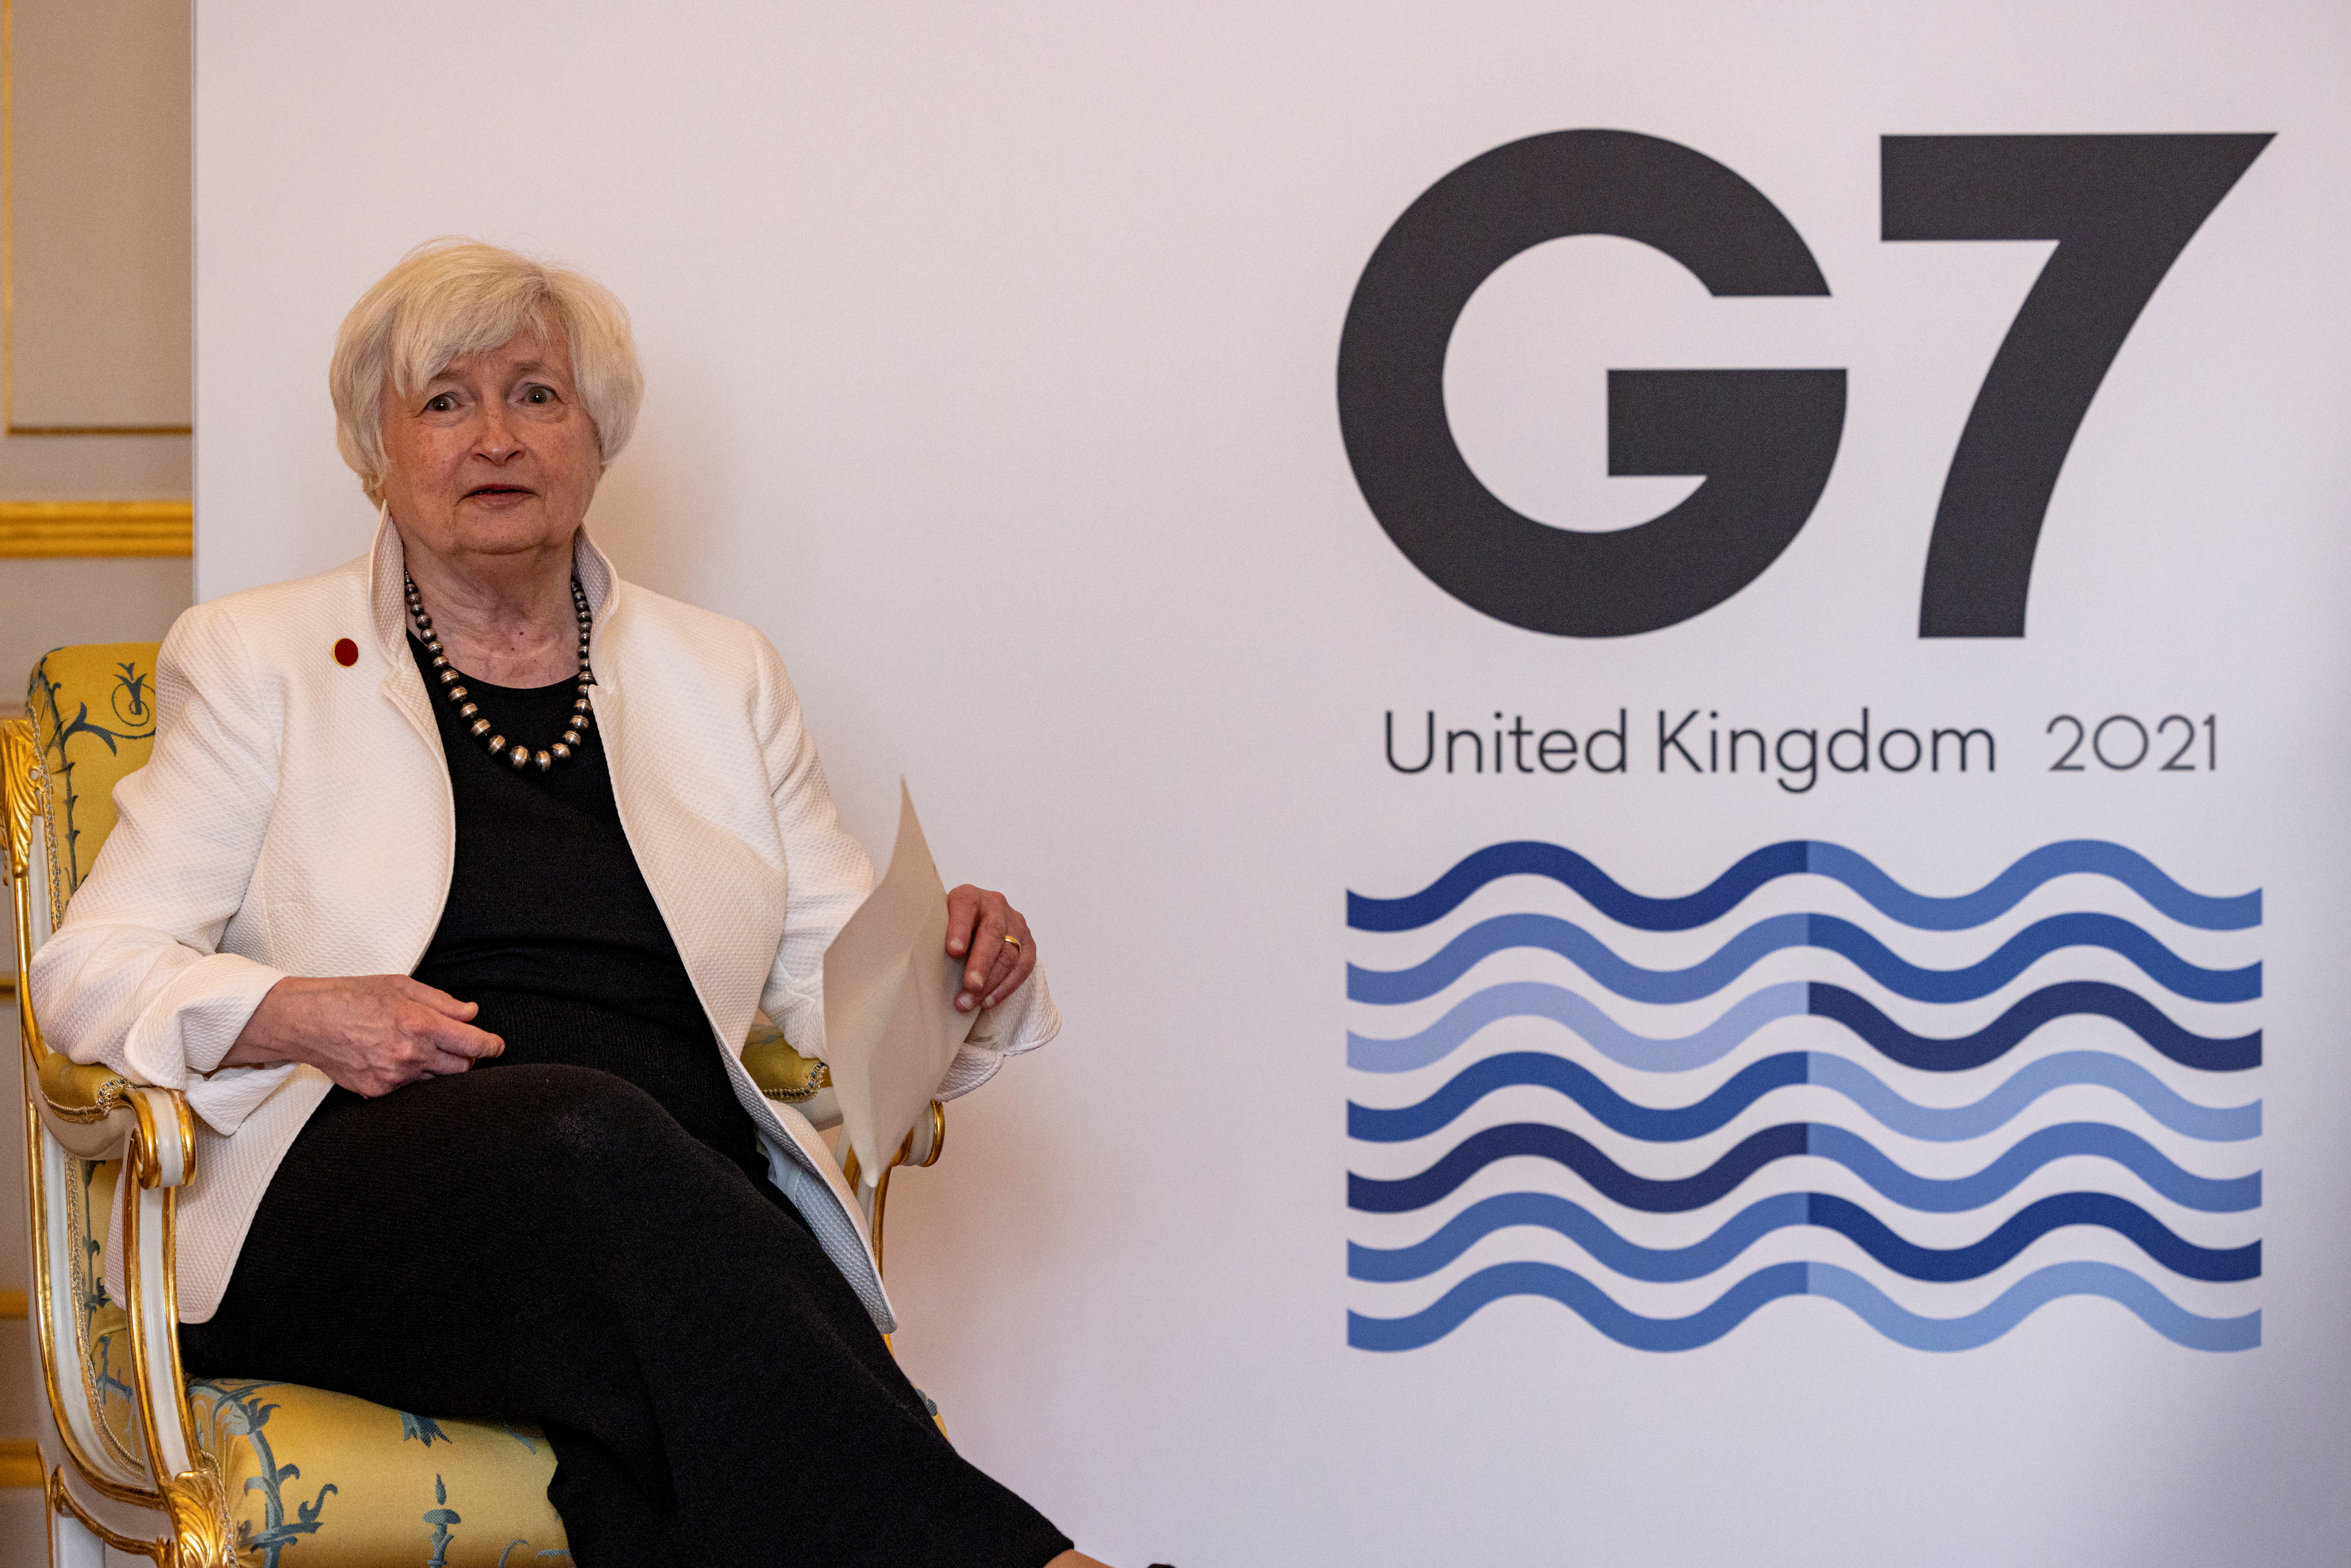 U.S. Treasury Secretary Janet Yellen reacts at Lancaster House during a finance ministers' meeting ahead of the G7 Summit, in London, Britain June 5, 2021. Rob Pinney